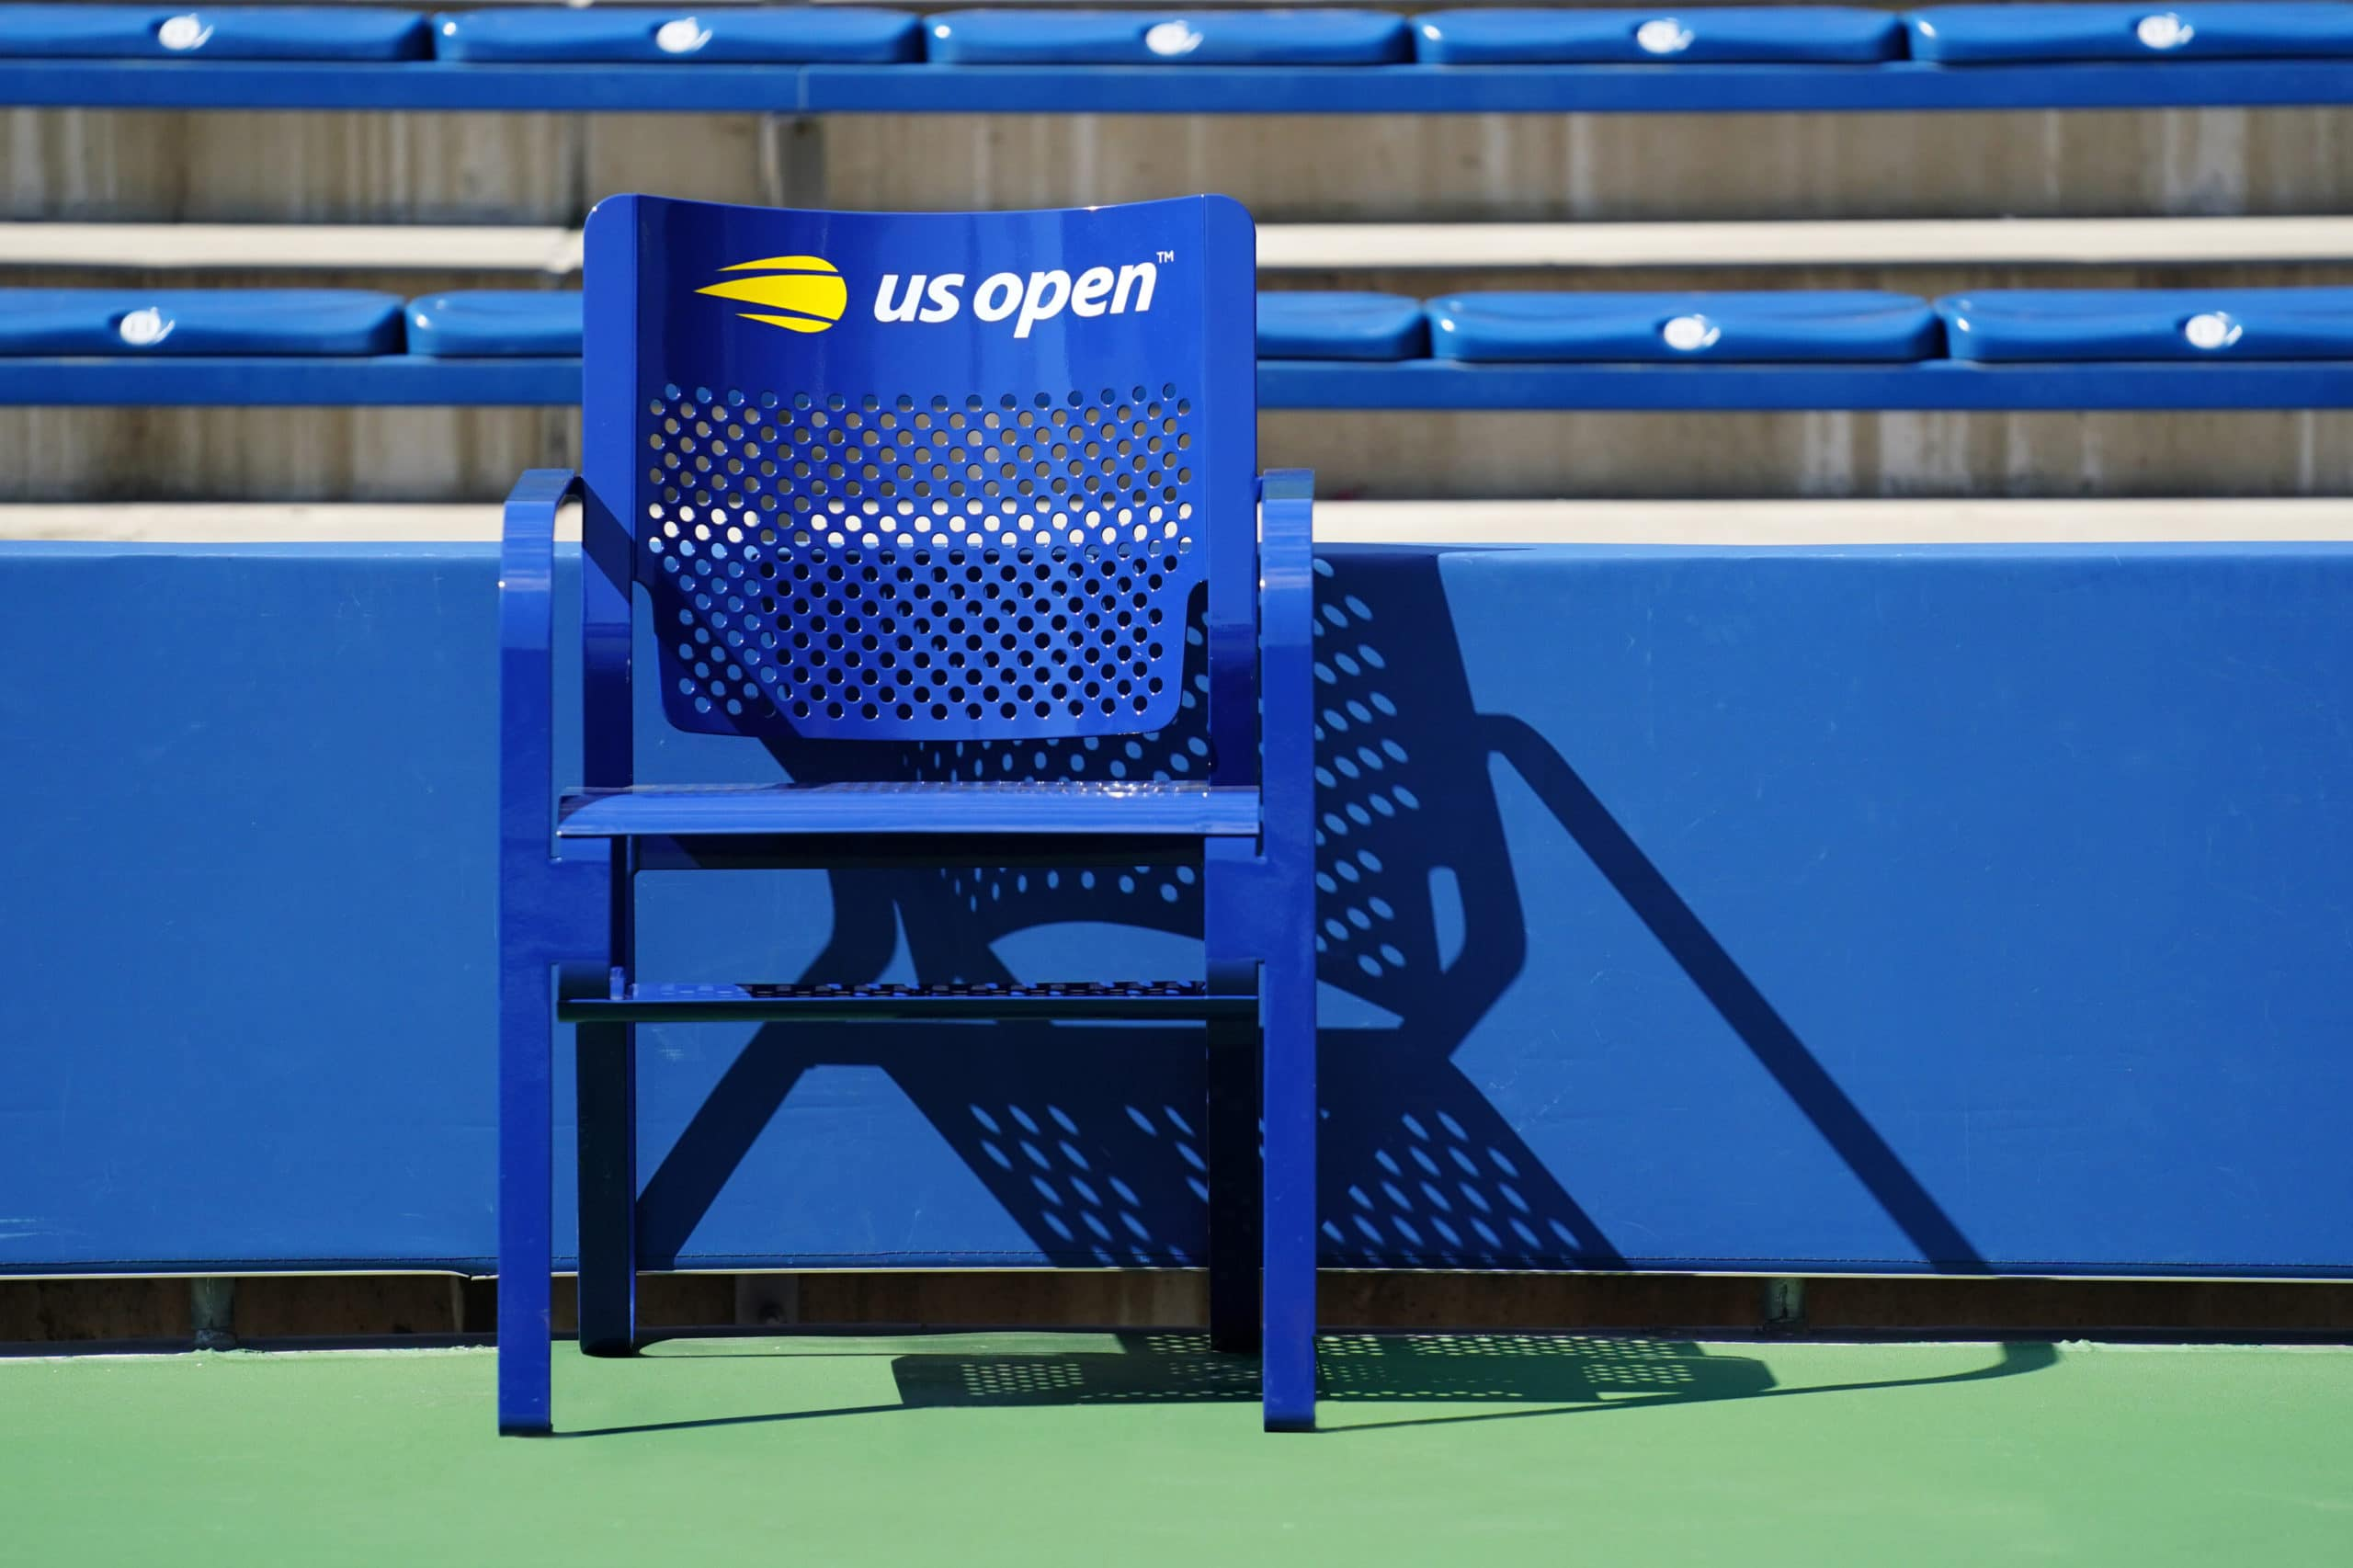 August 30, 2019 - A line umpire chair at the 2019 US Open. (Photo by Daniel Shirey/USTA)